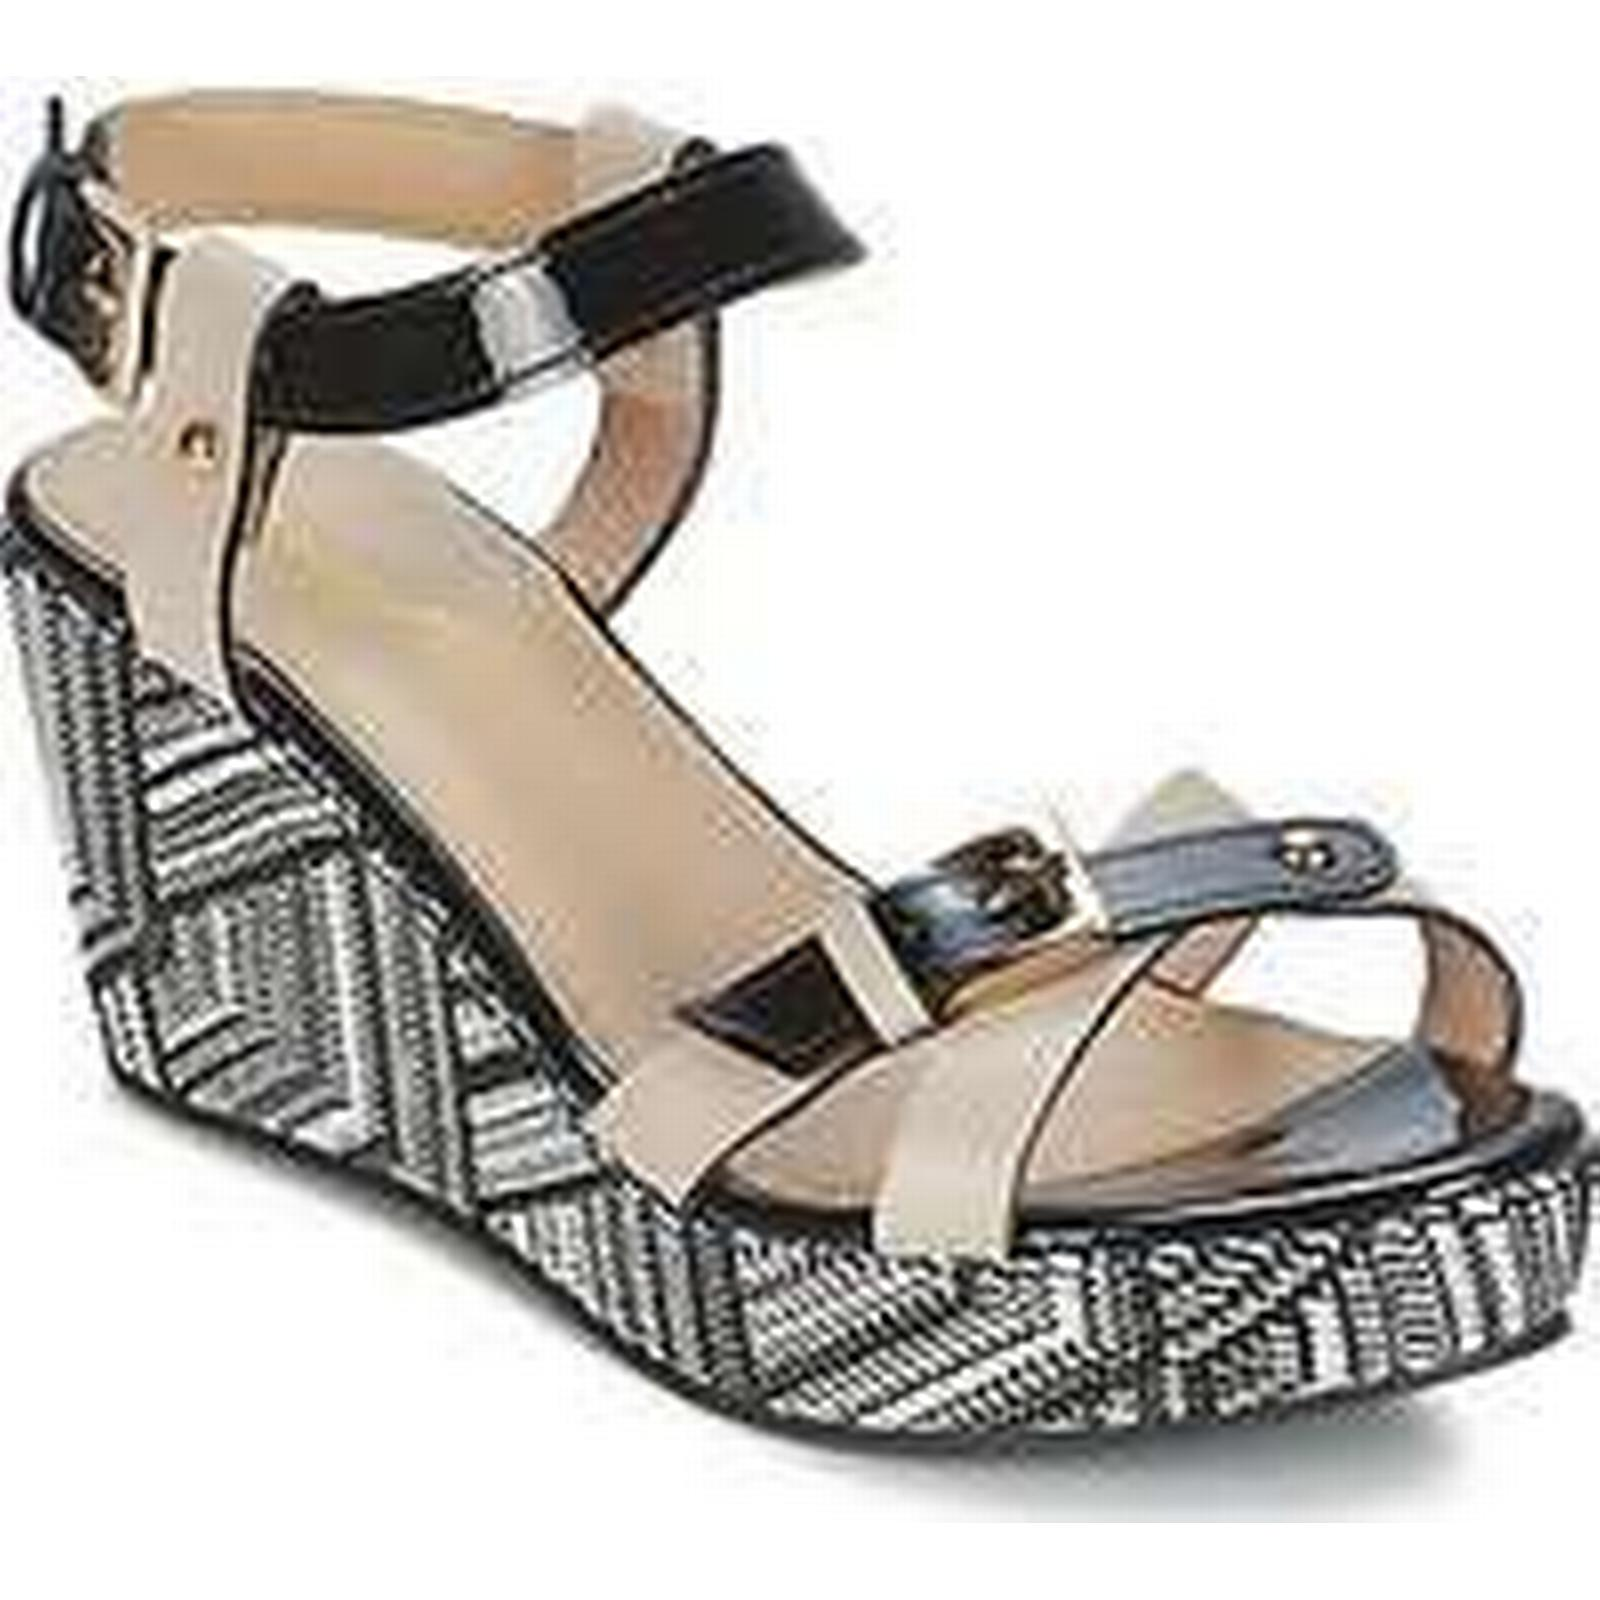 Spartoo.co.uk in Metamorf'Ose TACPOUR women's Sandals in Spartoo.co.uk Black a44c57